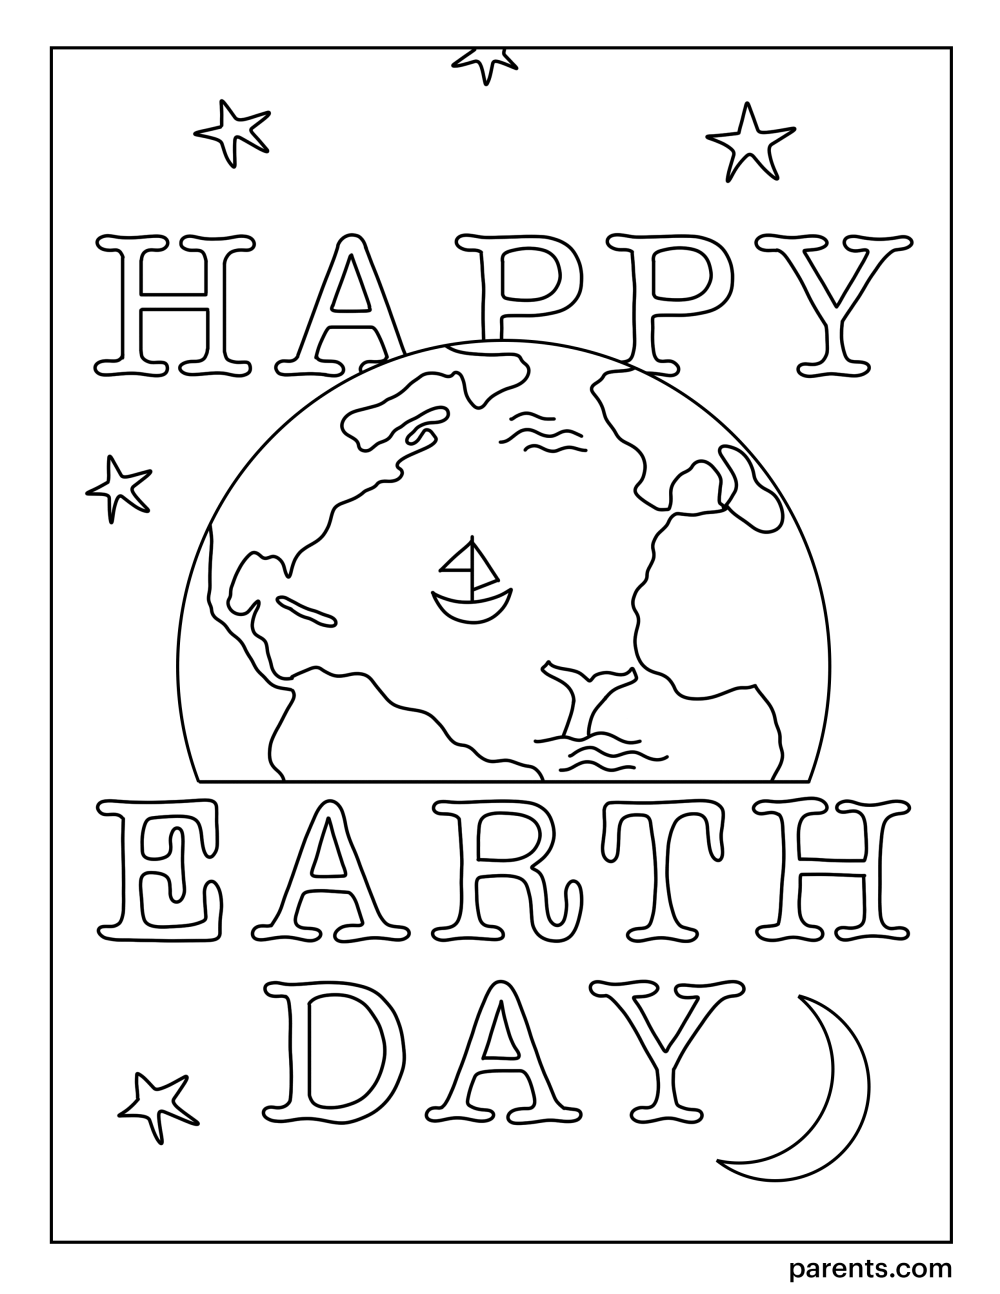 medium resolution of 10 Free Earth Day Coloring Pages for Kids   Parents